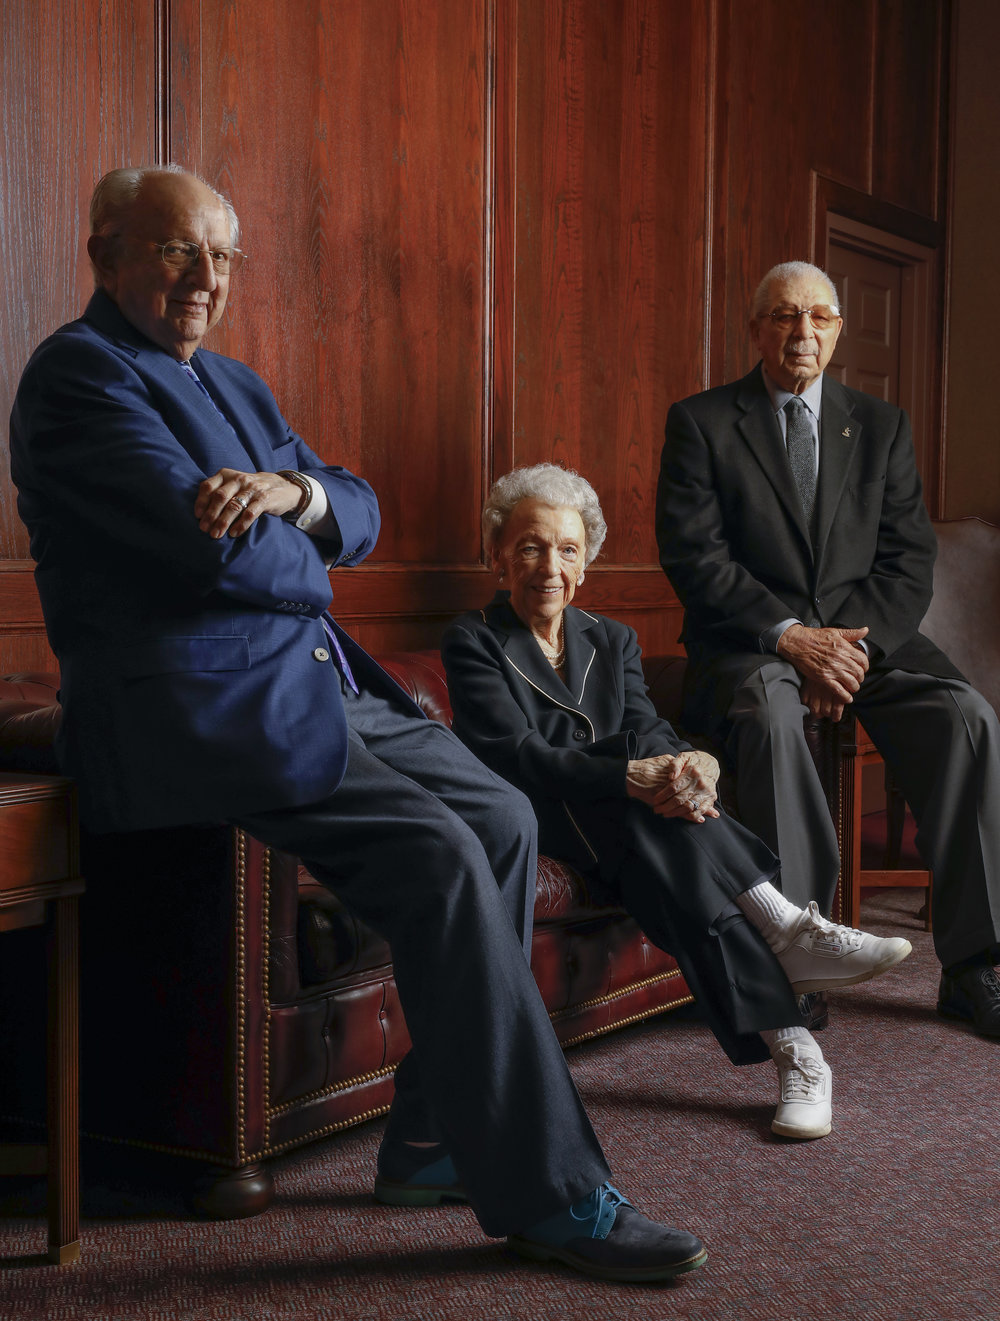 HONORARY CAMPAIGN MEMBERS - Former Parks Commissioners Mr. Carl DiCapo, Mrs. Anita Gorman, and Mr. Ollie Gates join the Honorary Campaign Chairs to support the Kansas City Museum.From 1986 to 1991, Mrs. Gorman, Mr. Gates, and Mr. DiCapo served together as Kansas City Parks Commissioners. This legendary trio was responsible for the revitalization of Starlight Theatre, the Kansas City Zoo, and the National World War I Museum and Memorial.Now they aim to lend their wisdom and experience to another major Kansas City cultural and civic treasure.